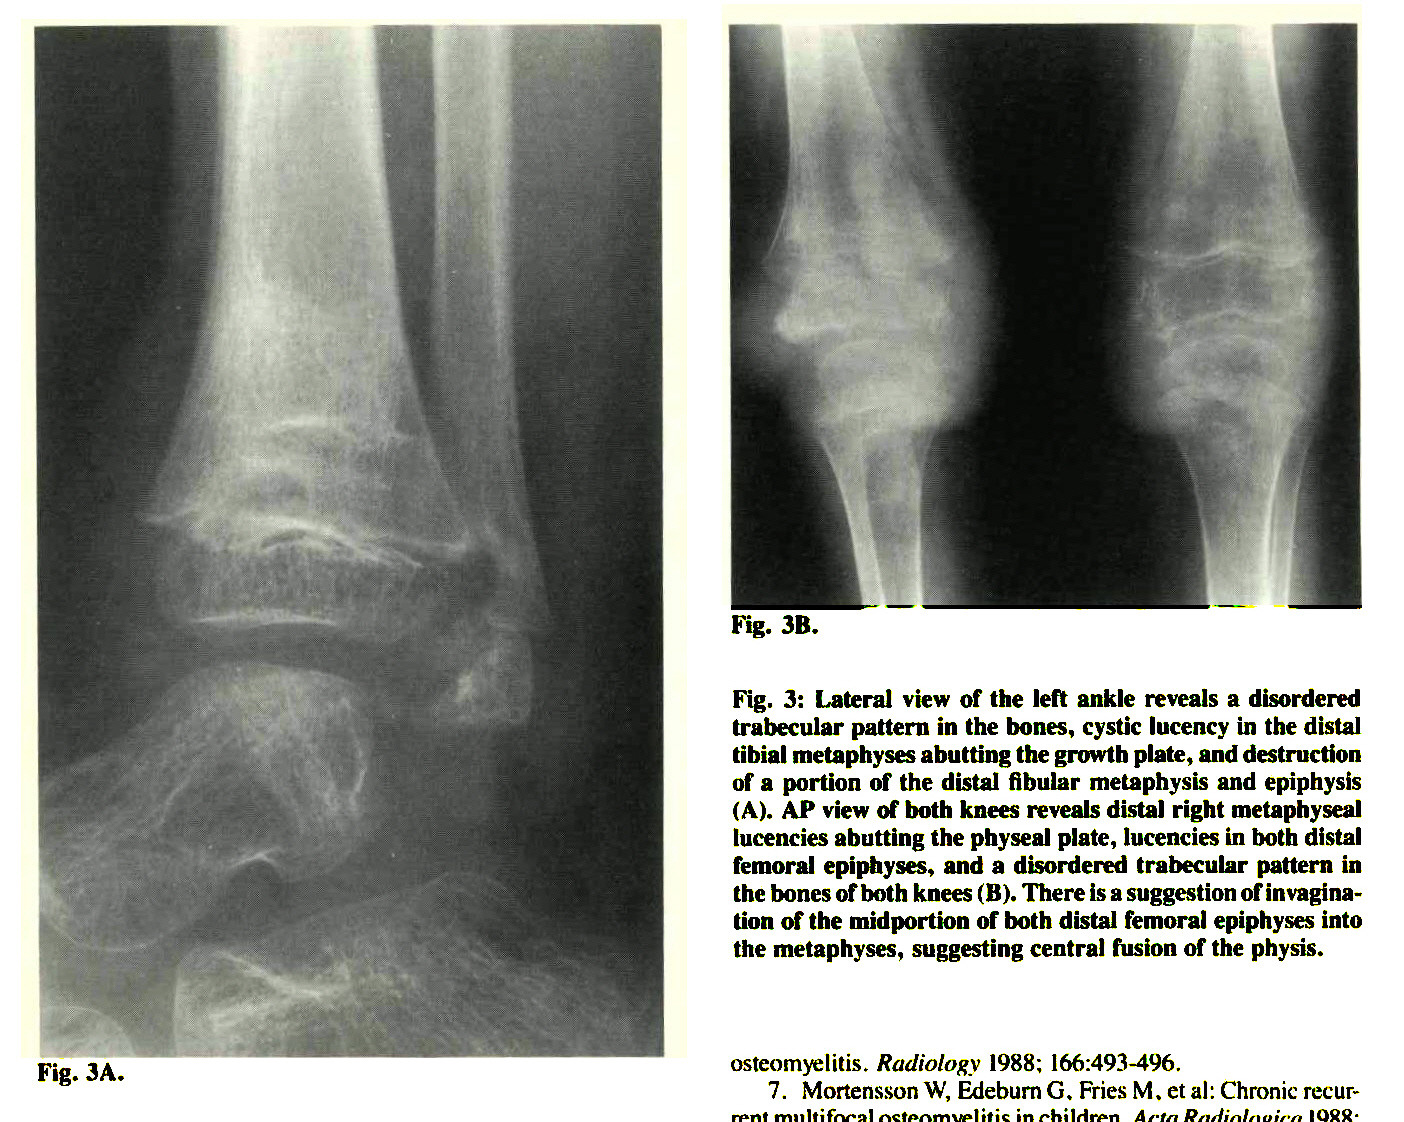 Fig. 3: Lateral view of the left ankle reveals a disordered trabecular pattern in the bones, cystic lucency in the distal tibial metaphyses abutting the growth plate, and destruction of a portion of the distal fibular metaphysis and epiphysis (A). AP view of both knees reveals distal right metaphyseal !licencies abutting the physeal plate, lucencies in both distal femoral epiphyses, and a disordered trabecular pattern in the bones of both knees (B). There is a suggestion of invagination of the midportton of both distal femoral epiphyses into the metaphyses, suggesting central fusion of the physis.